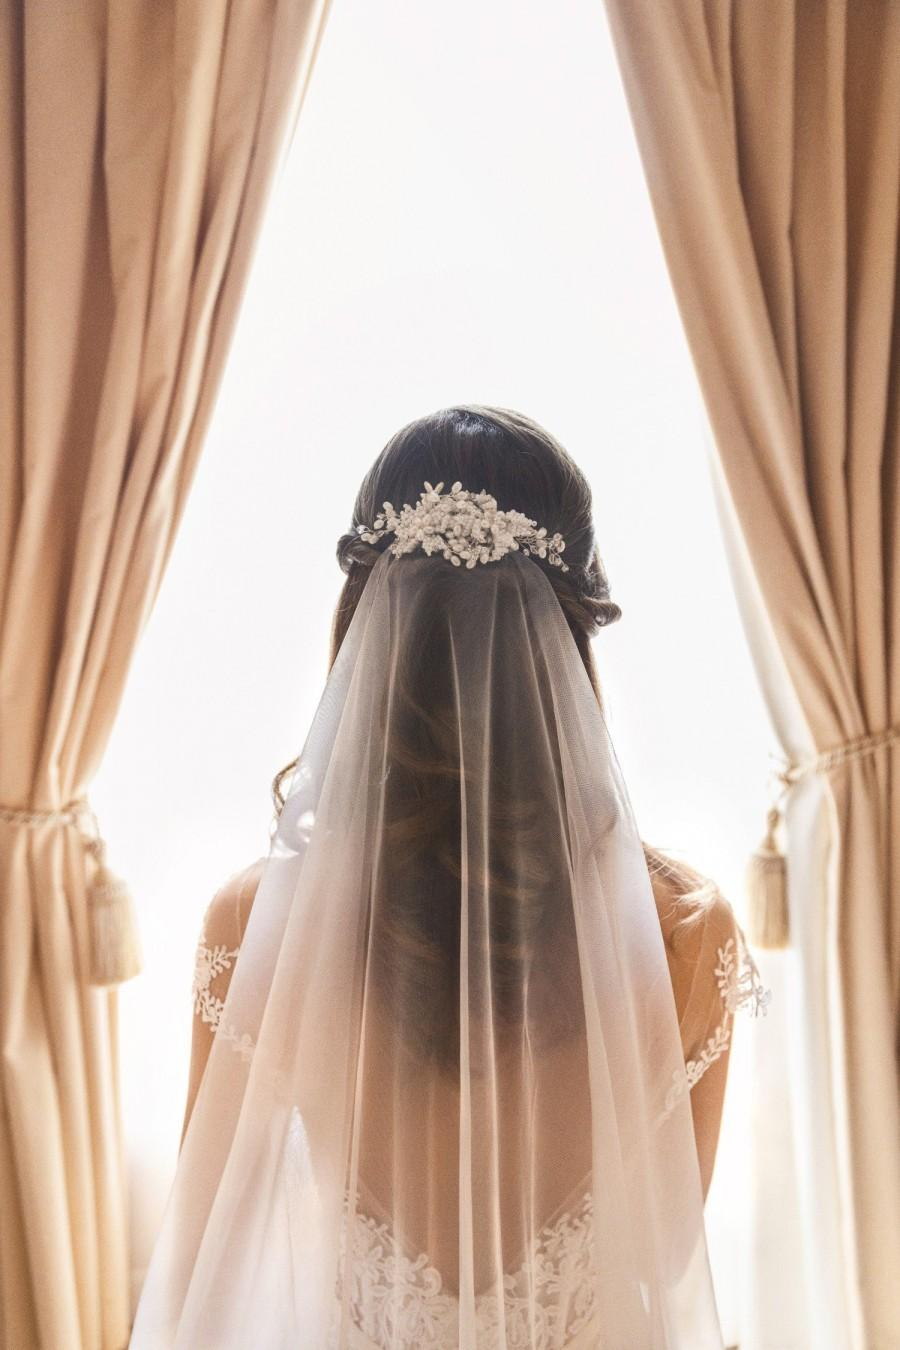 Mariage - Sheer simple veil, one tier bridal veil, no gather on comb veil- raw edge drop wedding veil, long illusion veil -flowing veil